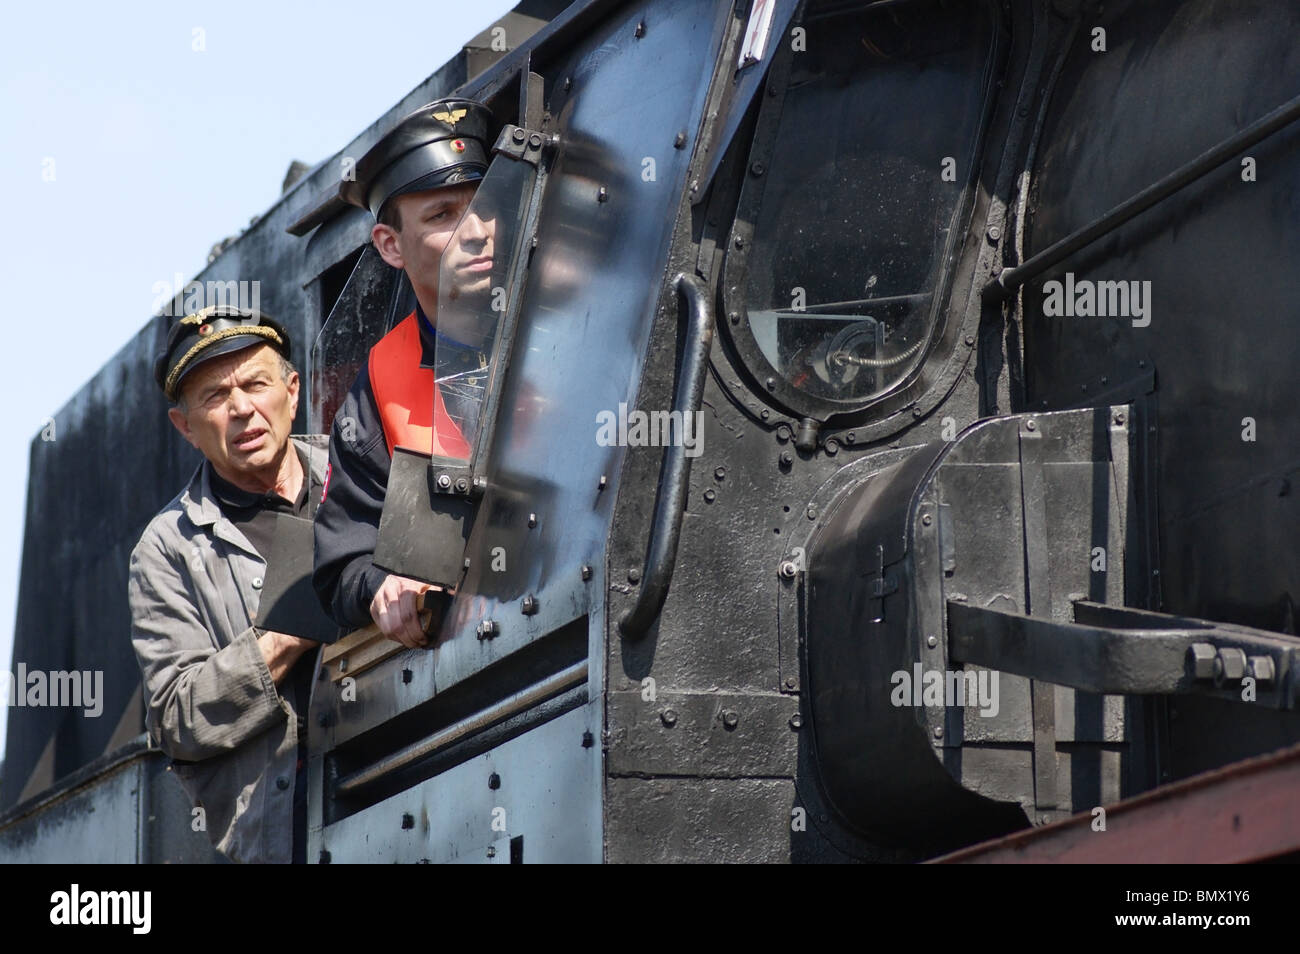 Locomotive Engineer and Fireman looking out of a 01 German Steam Locomotive - Stock Image